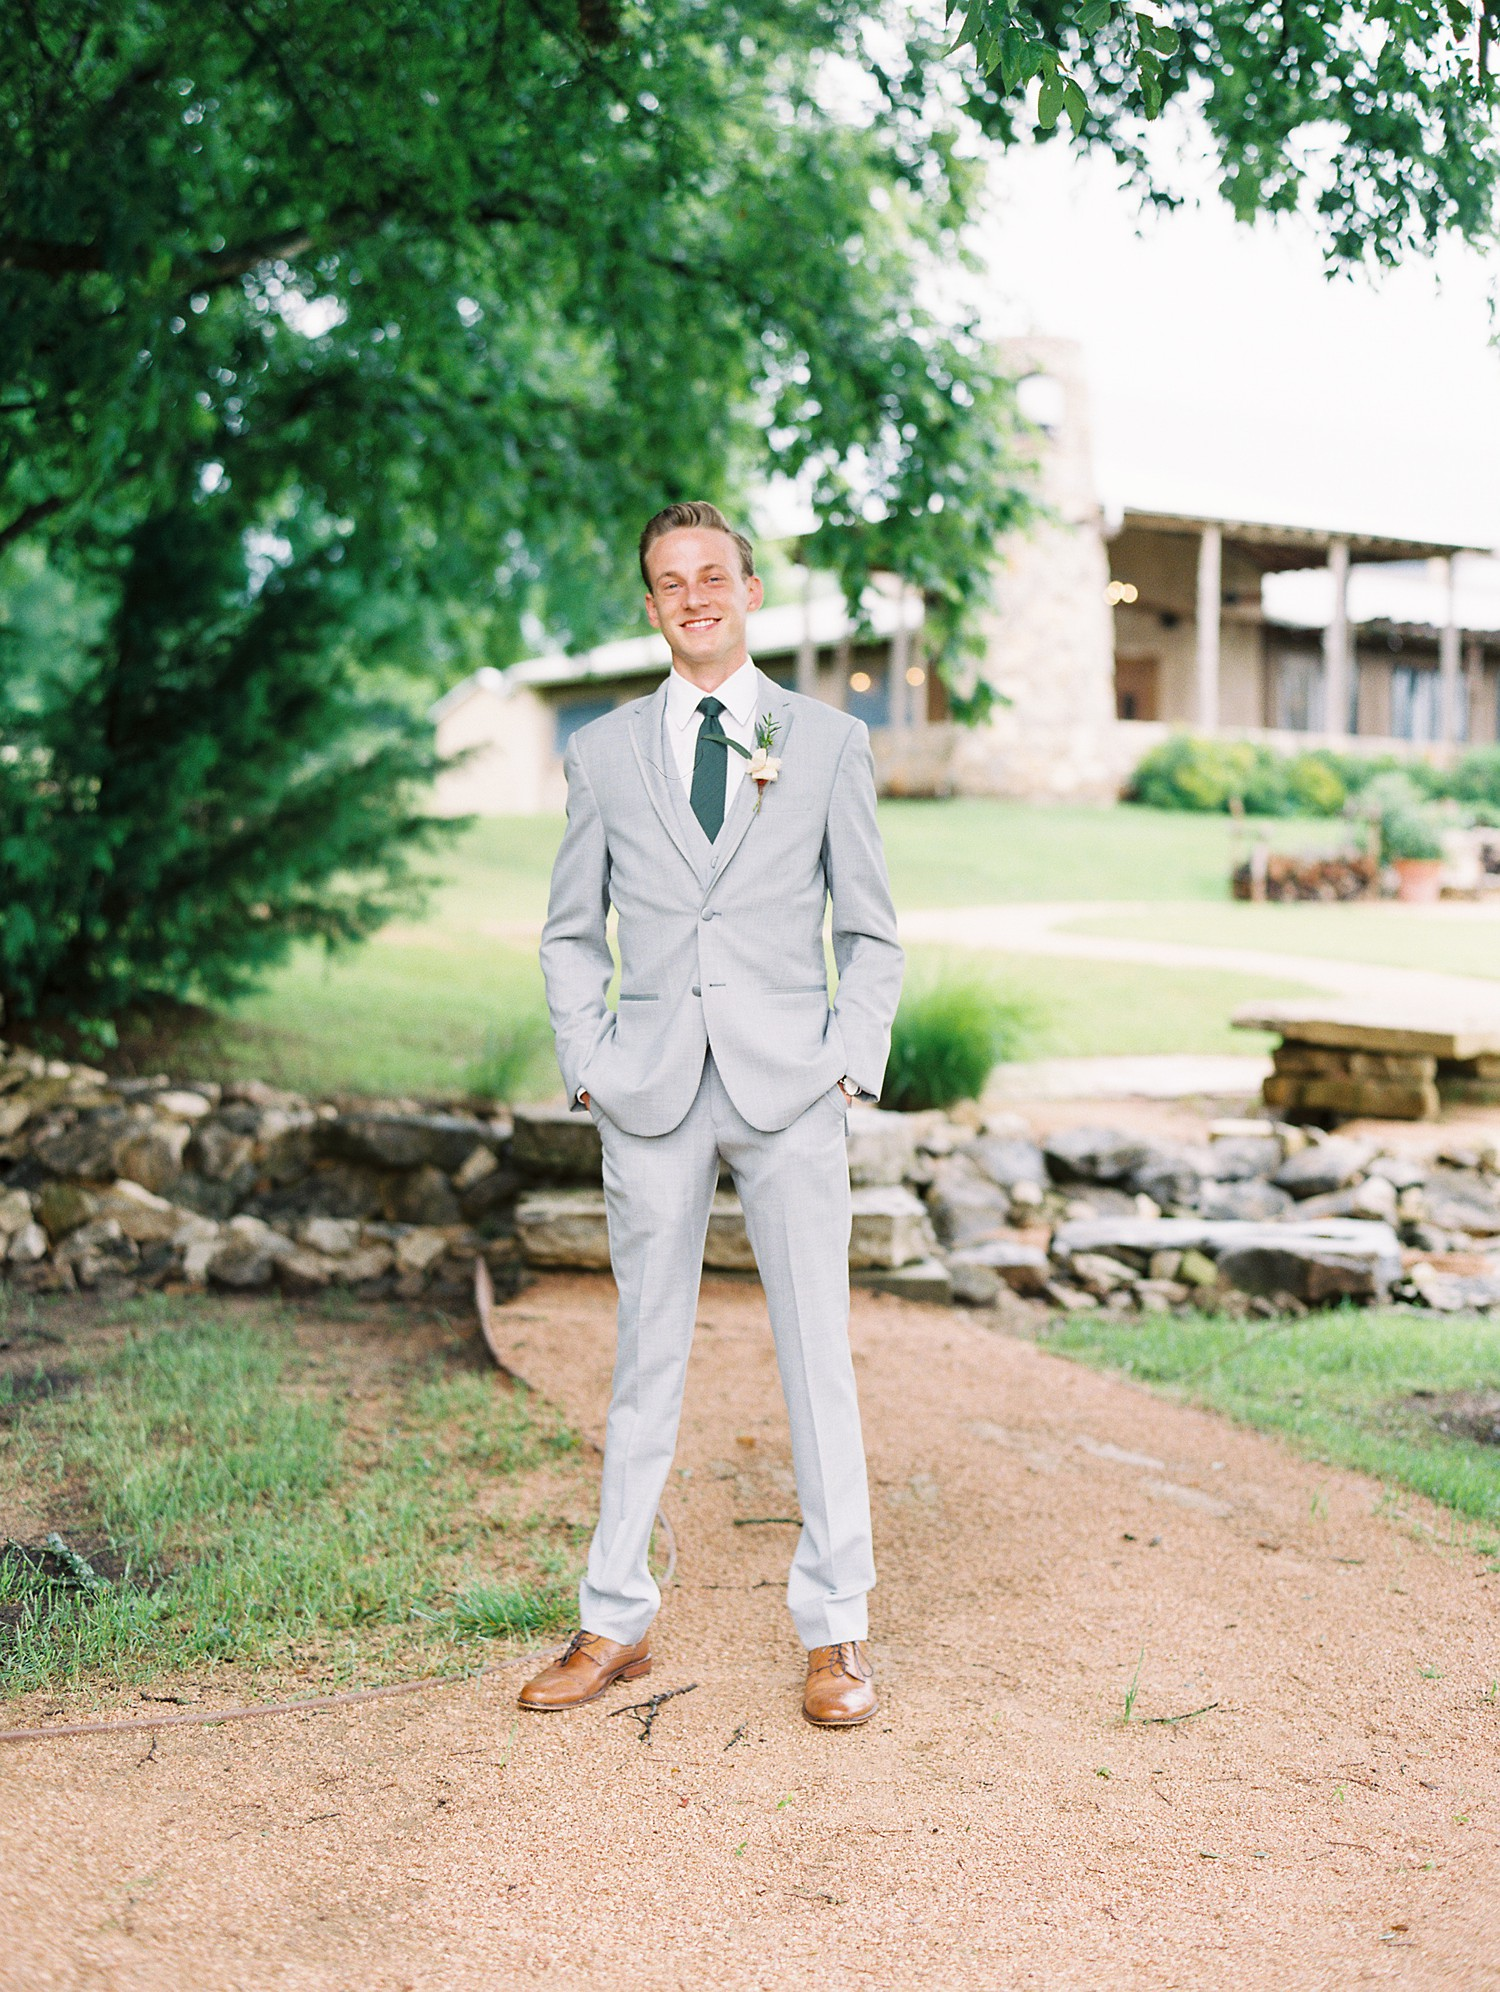 Summer Wedding Inspiration, Grey Groom Suit | Wedding Gift | Something Old | | Summer Wedding Inspiration | Fort Worth Wedding Photographer | The Brooks at Weatherford